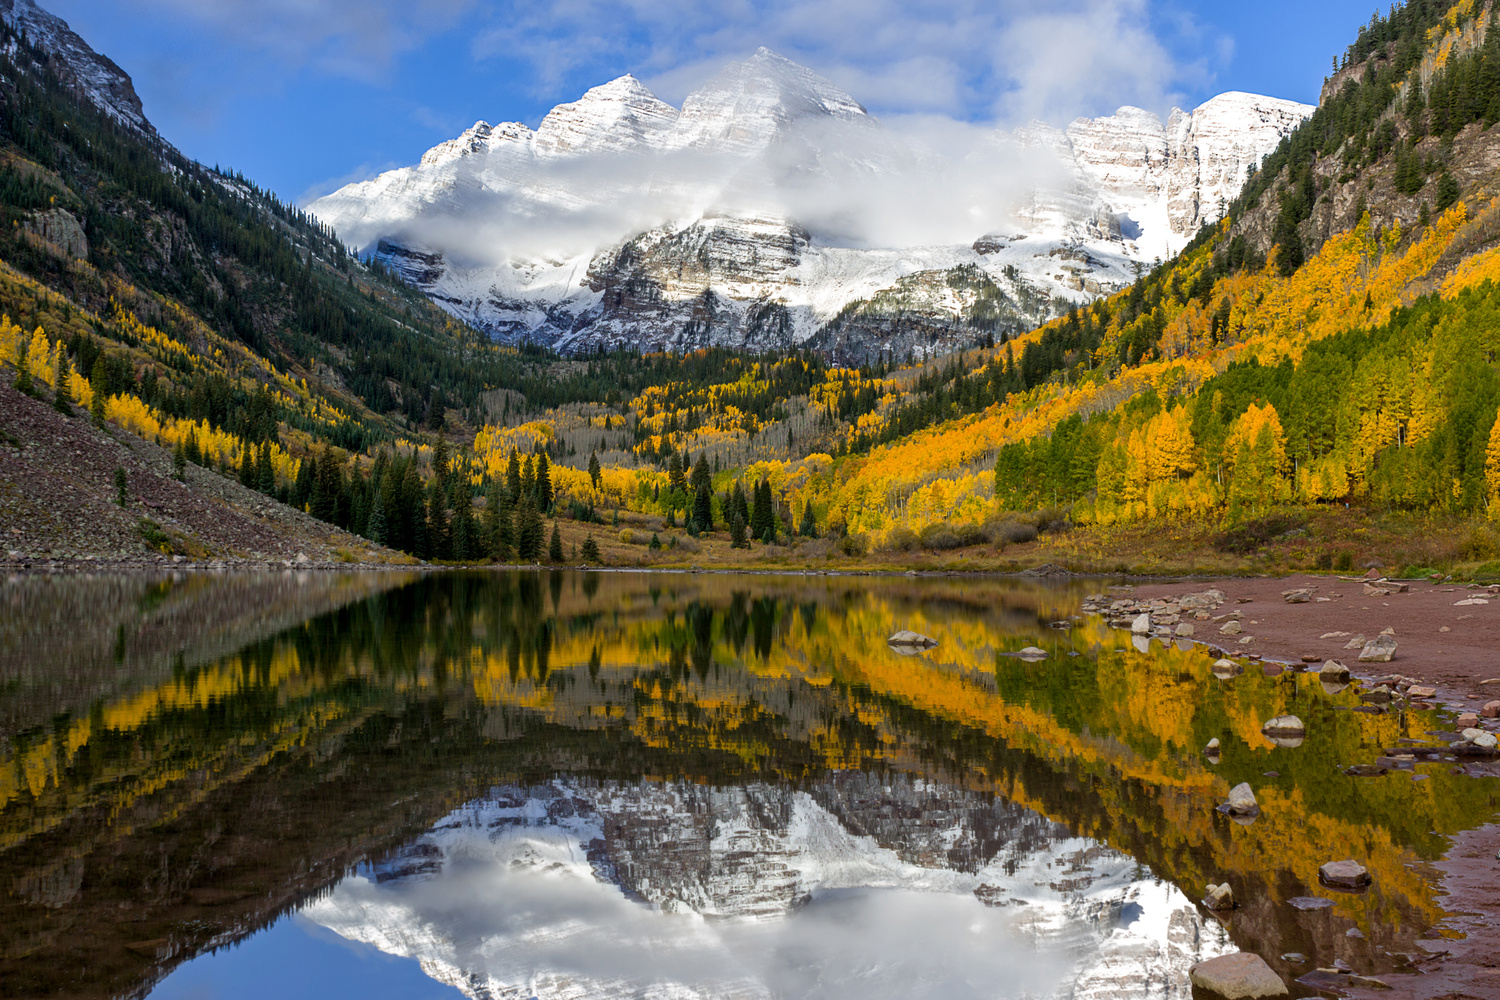 Fall Morning at the Maroon Bells by Nick Souvall